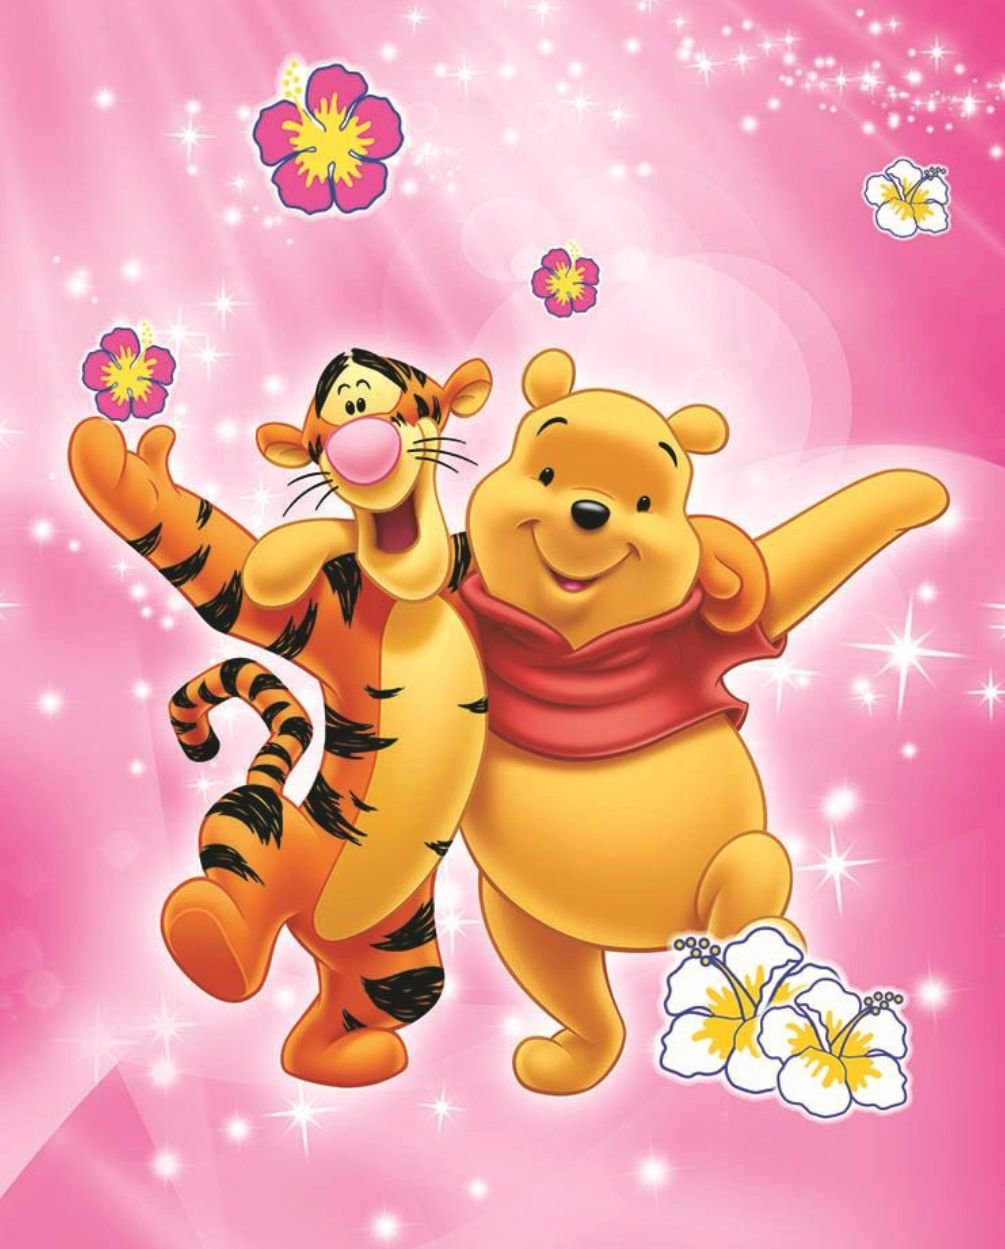 Pin By Kirsten Rand On Pooh Winnie The Pooh Pictures Winnie The Pooh Cute Winnie The Pooh